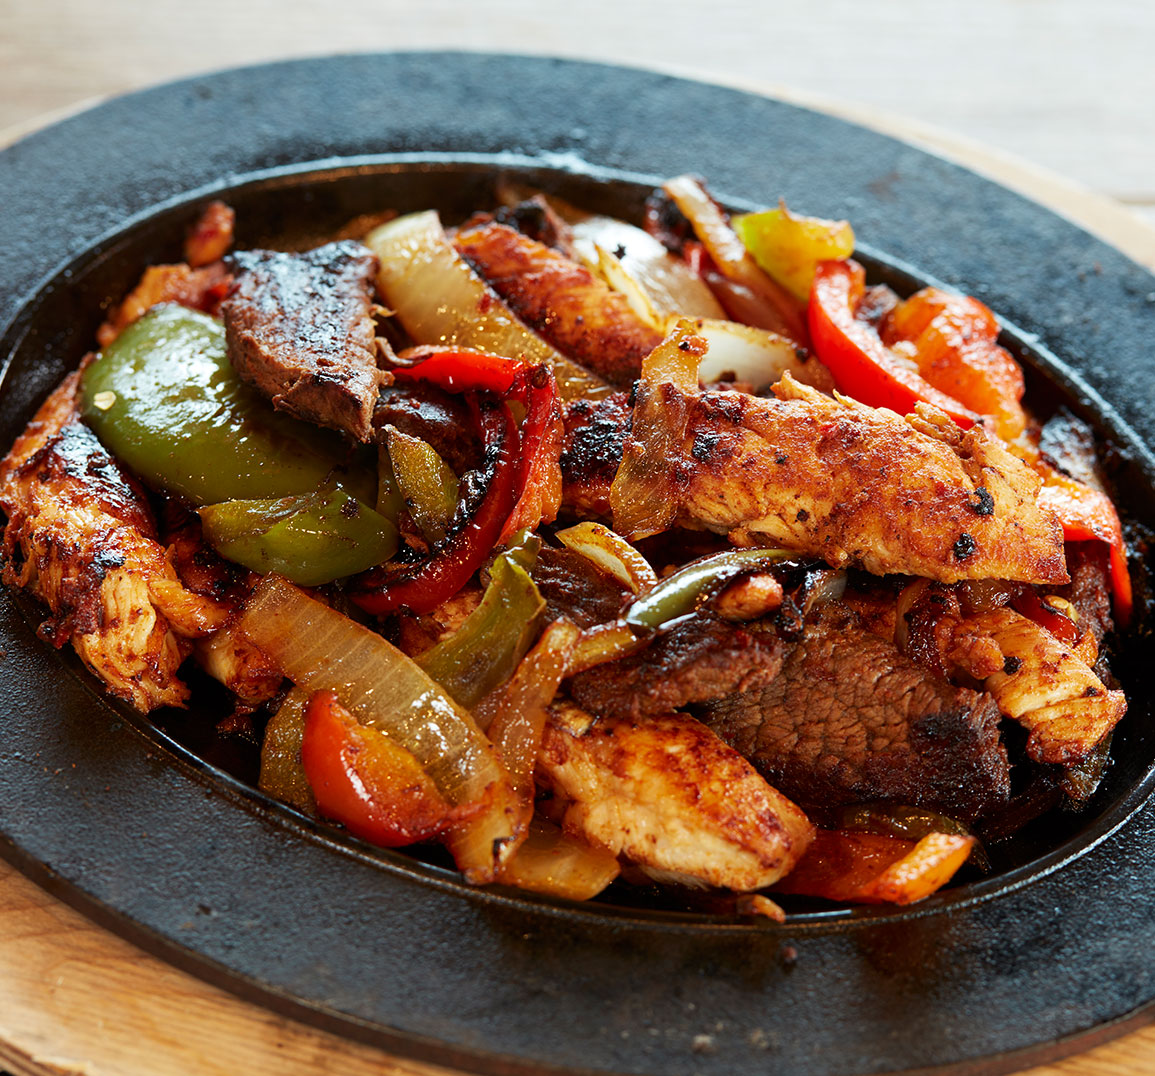 chicken and vegetable fajita in cast iron pan in wooden holder